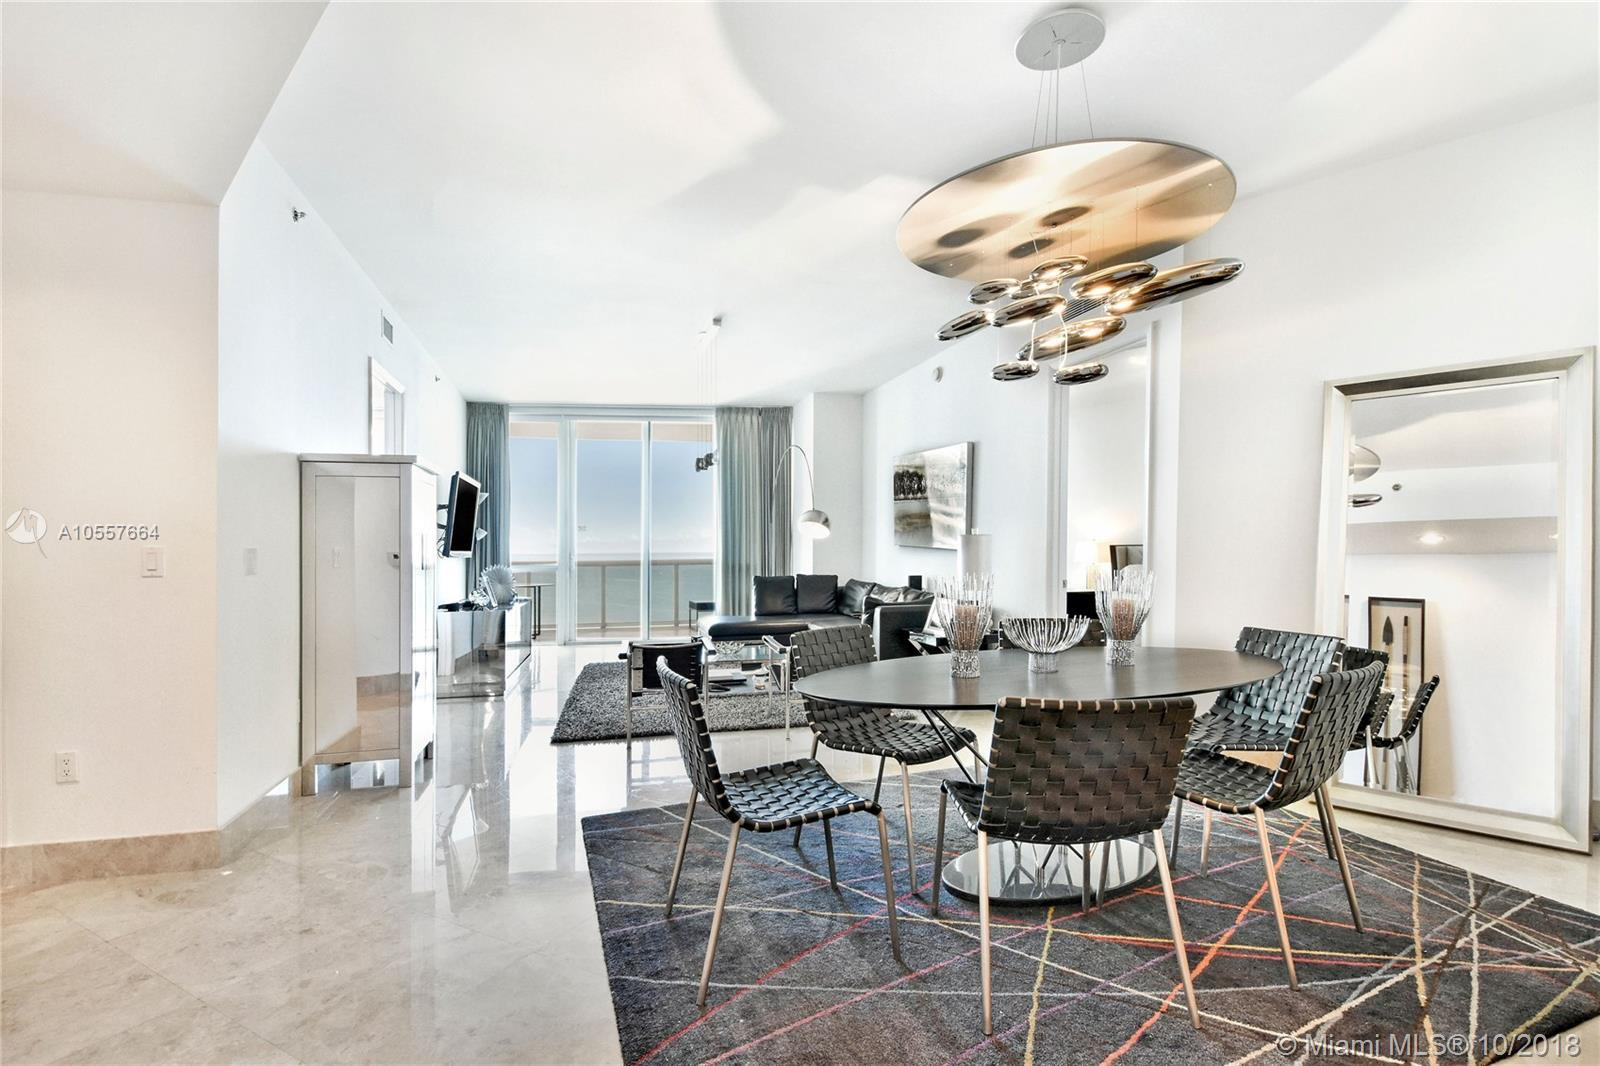 Incredible direct ocean views from the 17th floor of the luxurious oceanfront development in Sunny I